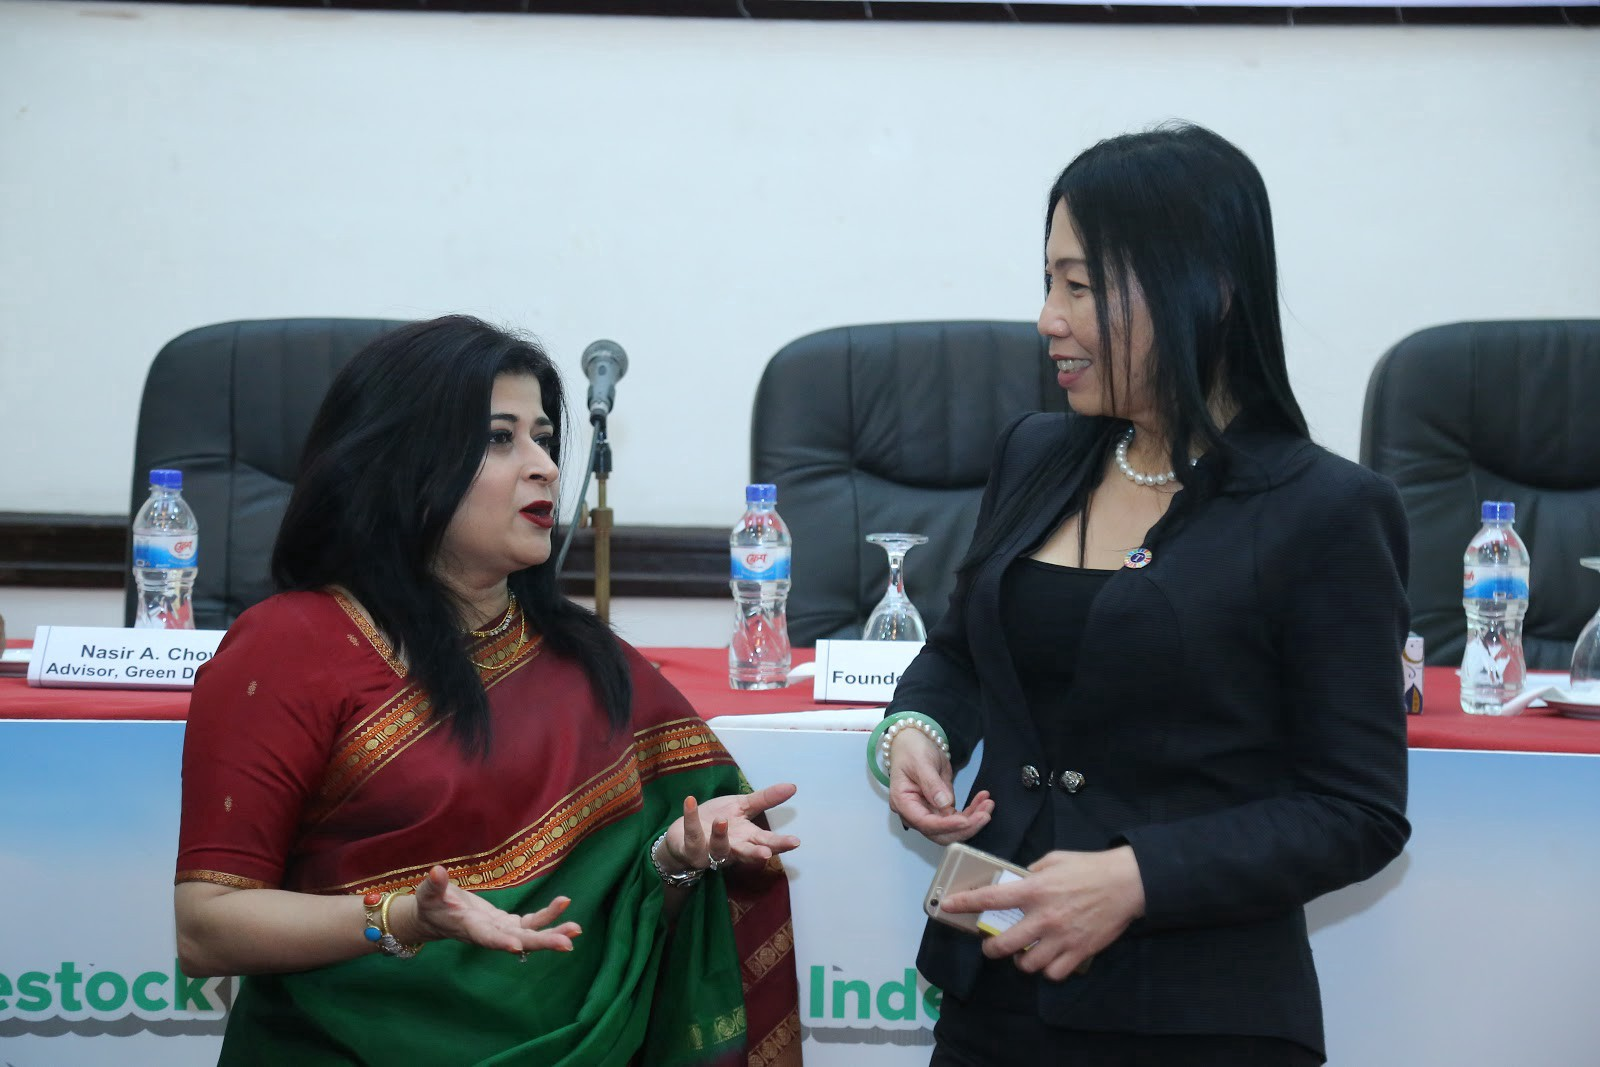 Ms. Chowdury, an SDG Pioneer discussing the Sustainable Development Goals with Chan Sue Meng, InfoCorp's Director of Strategi